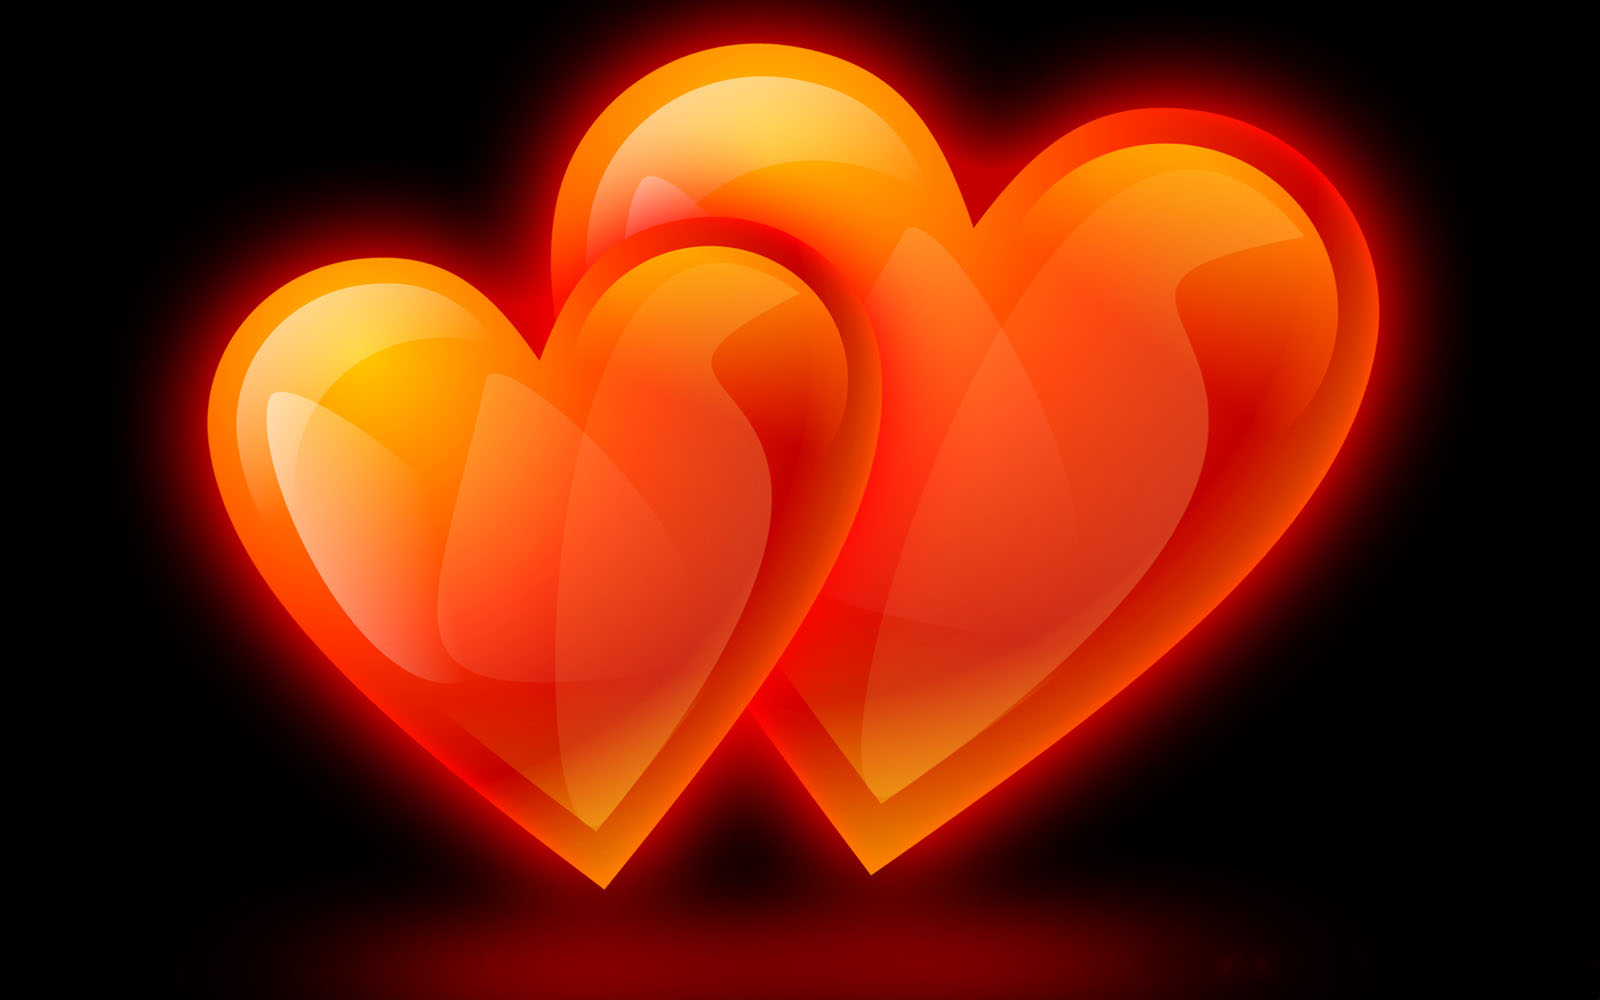 Hd Wallpaper High Resolution Love Wallpapers For Free